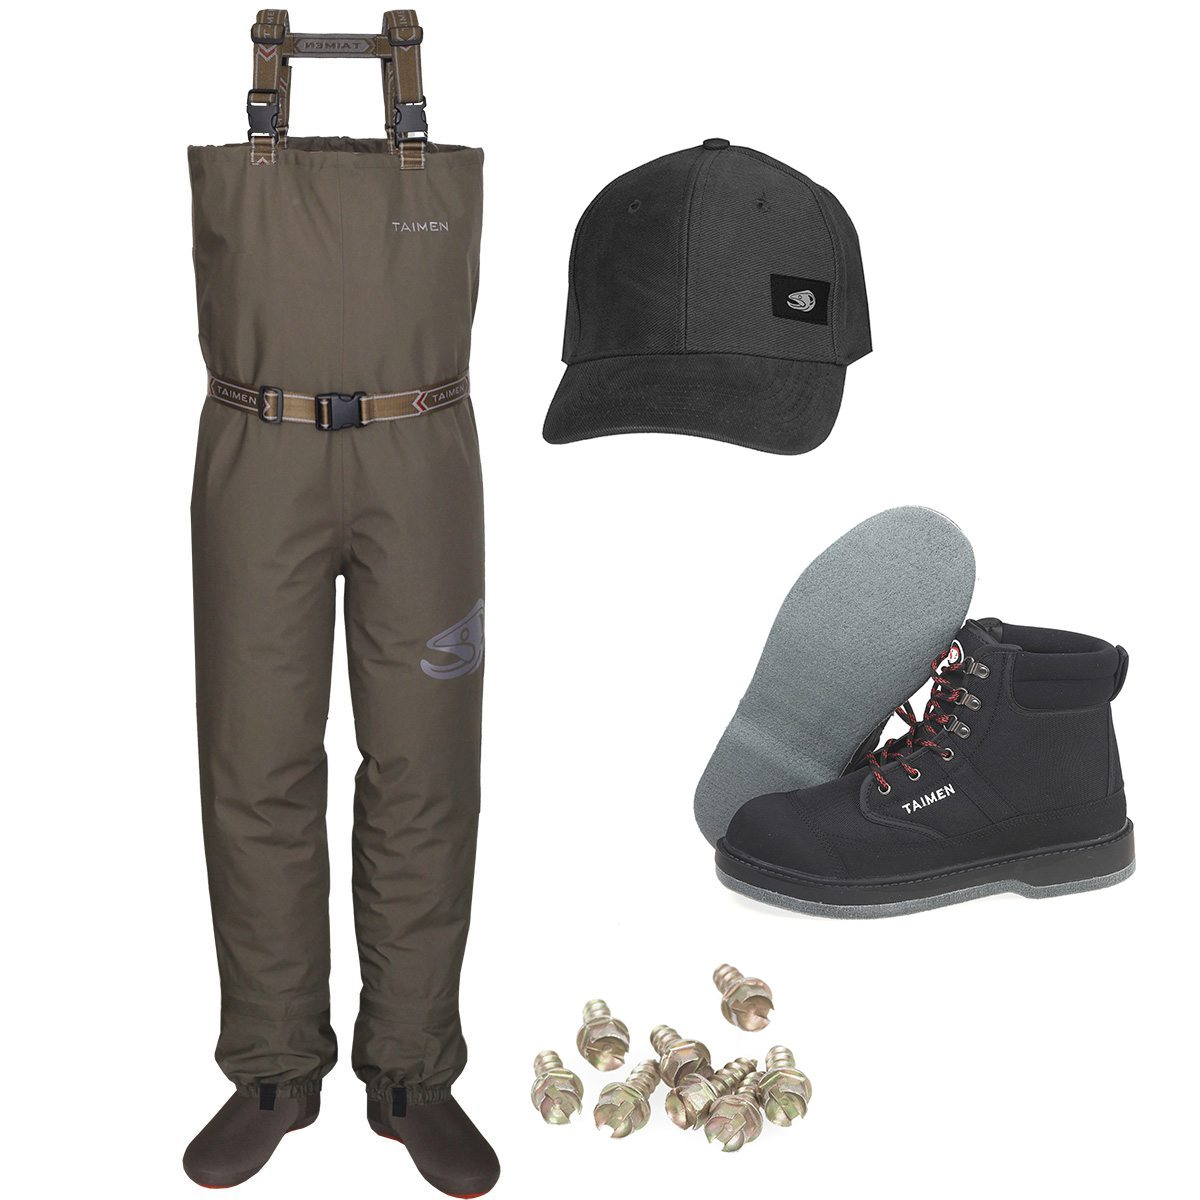 Taimen STX Waders Set